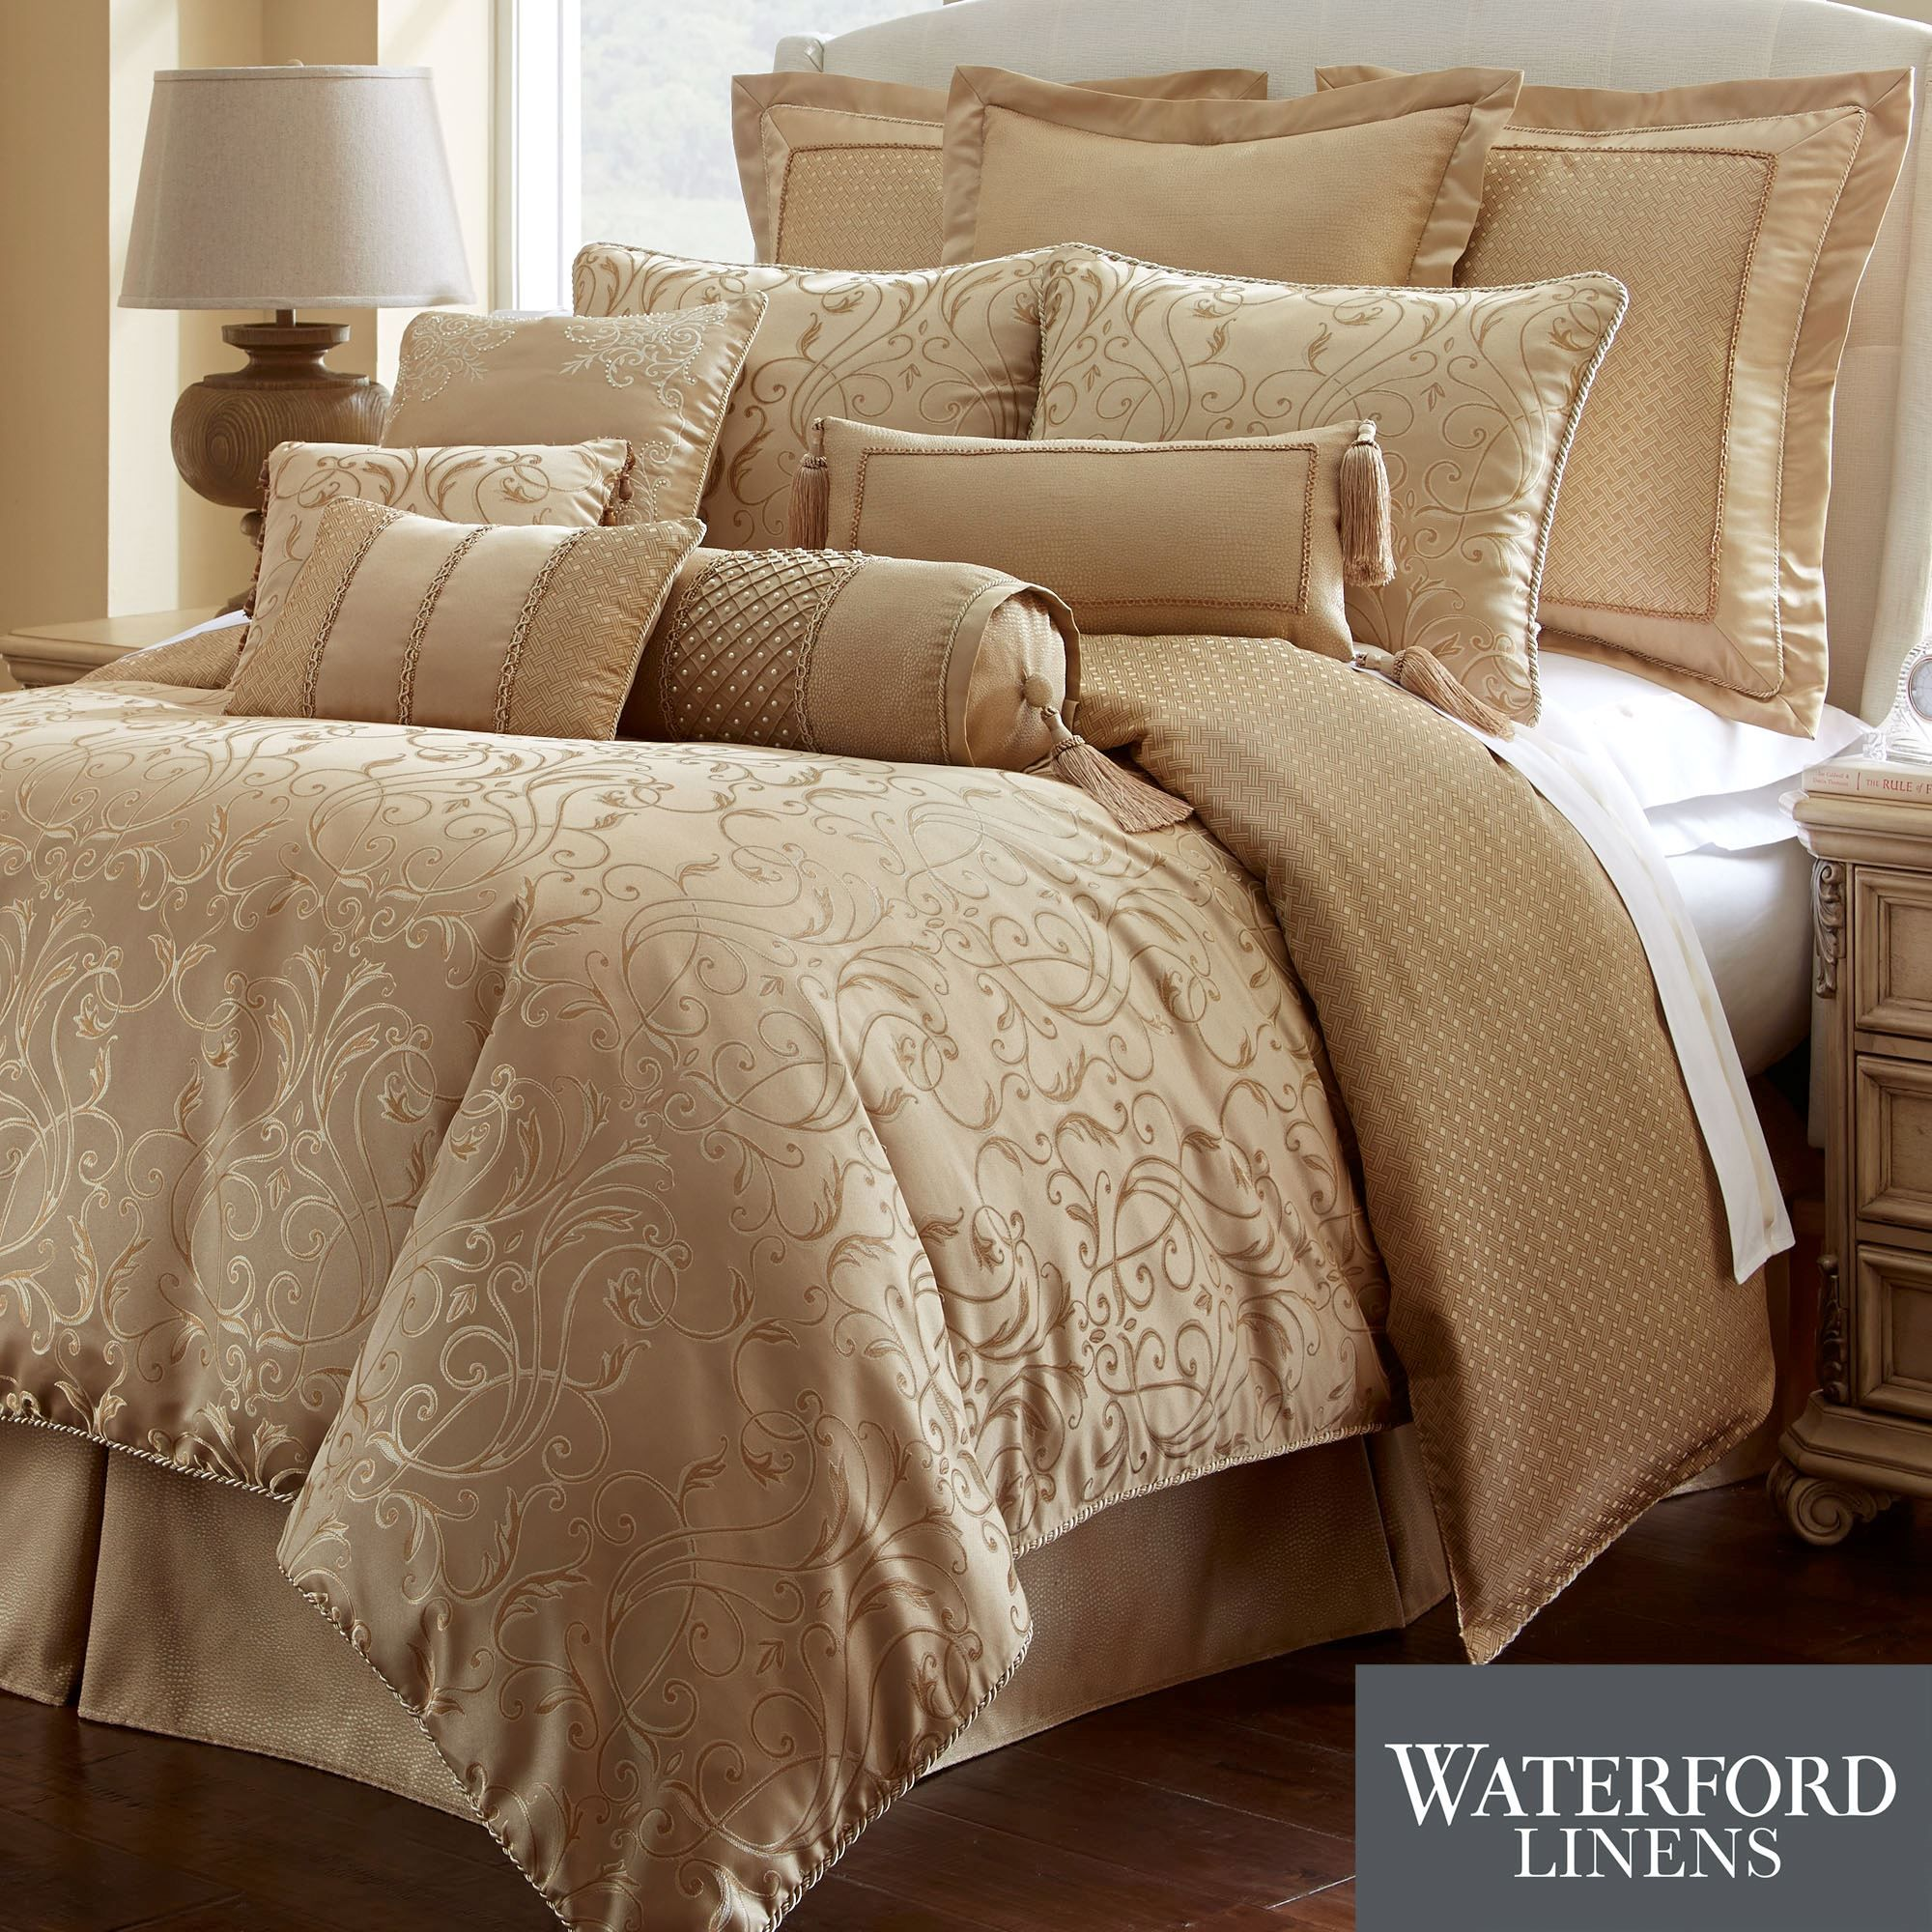 set comforters king white on comforter furniture cheap sets twin black teal burgundy queen grey bedding blue brown navy gold sale and